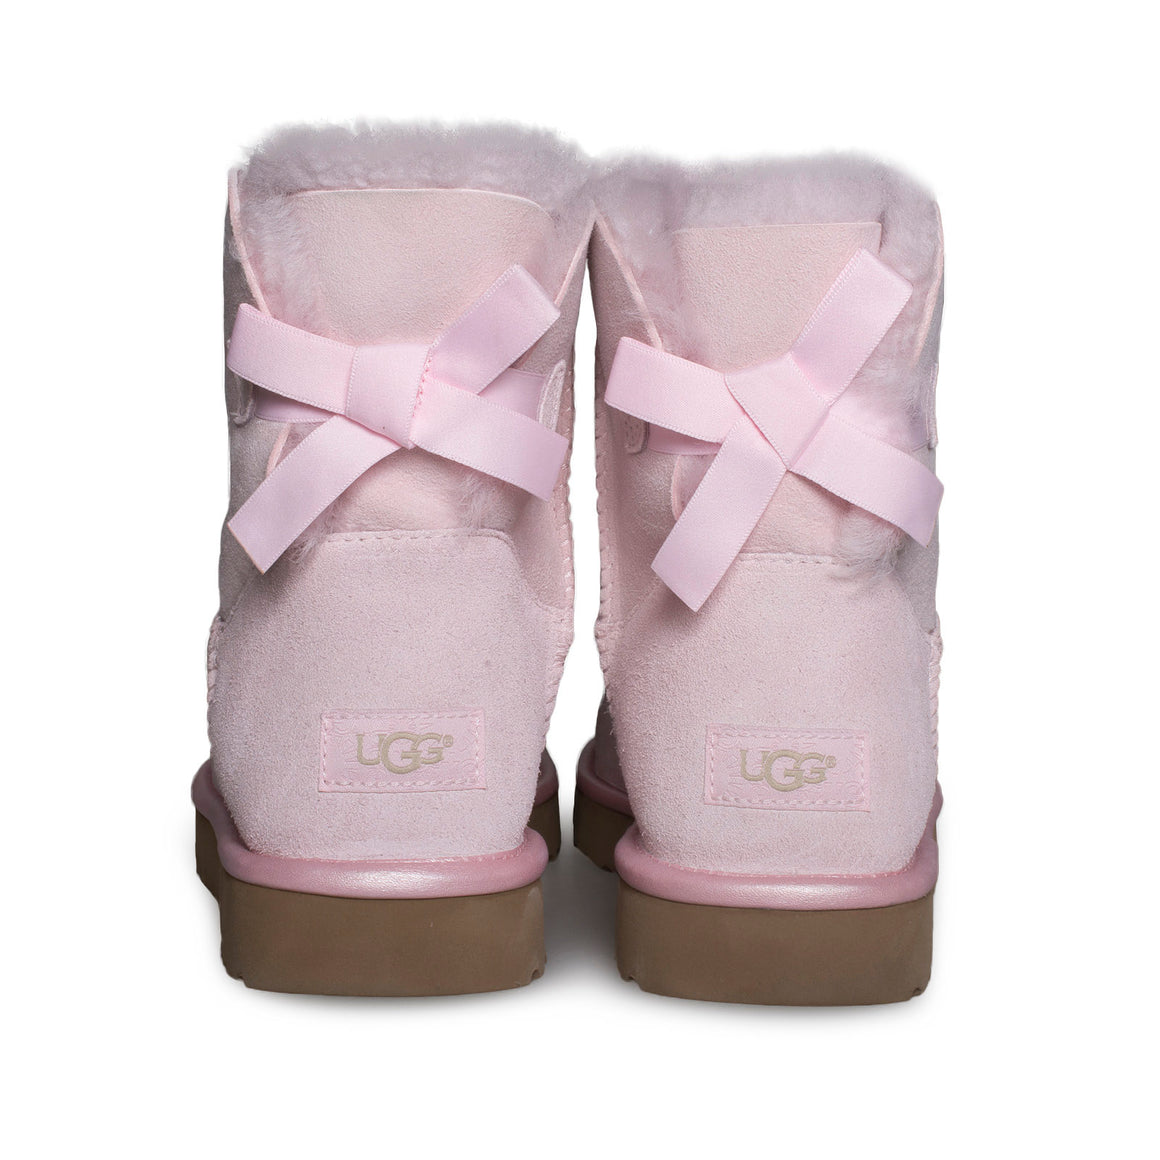 UGG Mini Bailey Bow II Metallic Seashell Pink Boots - Women's